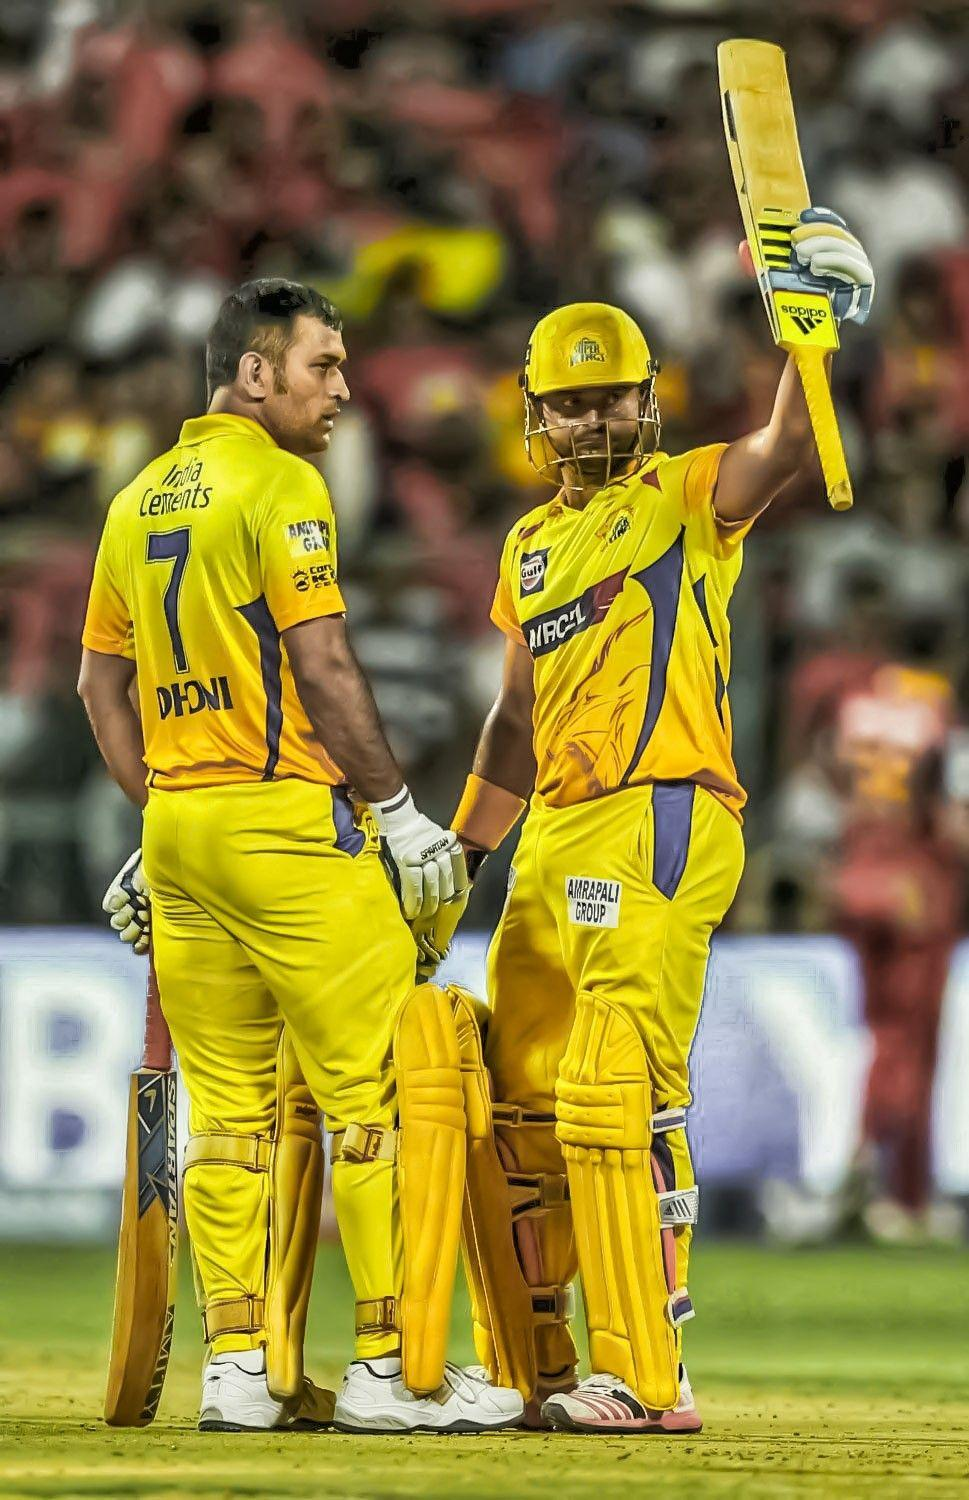 CSK Dhoni Wallpapers - Wallpaper Cave